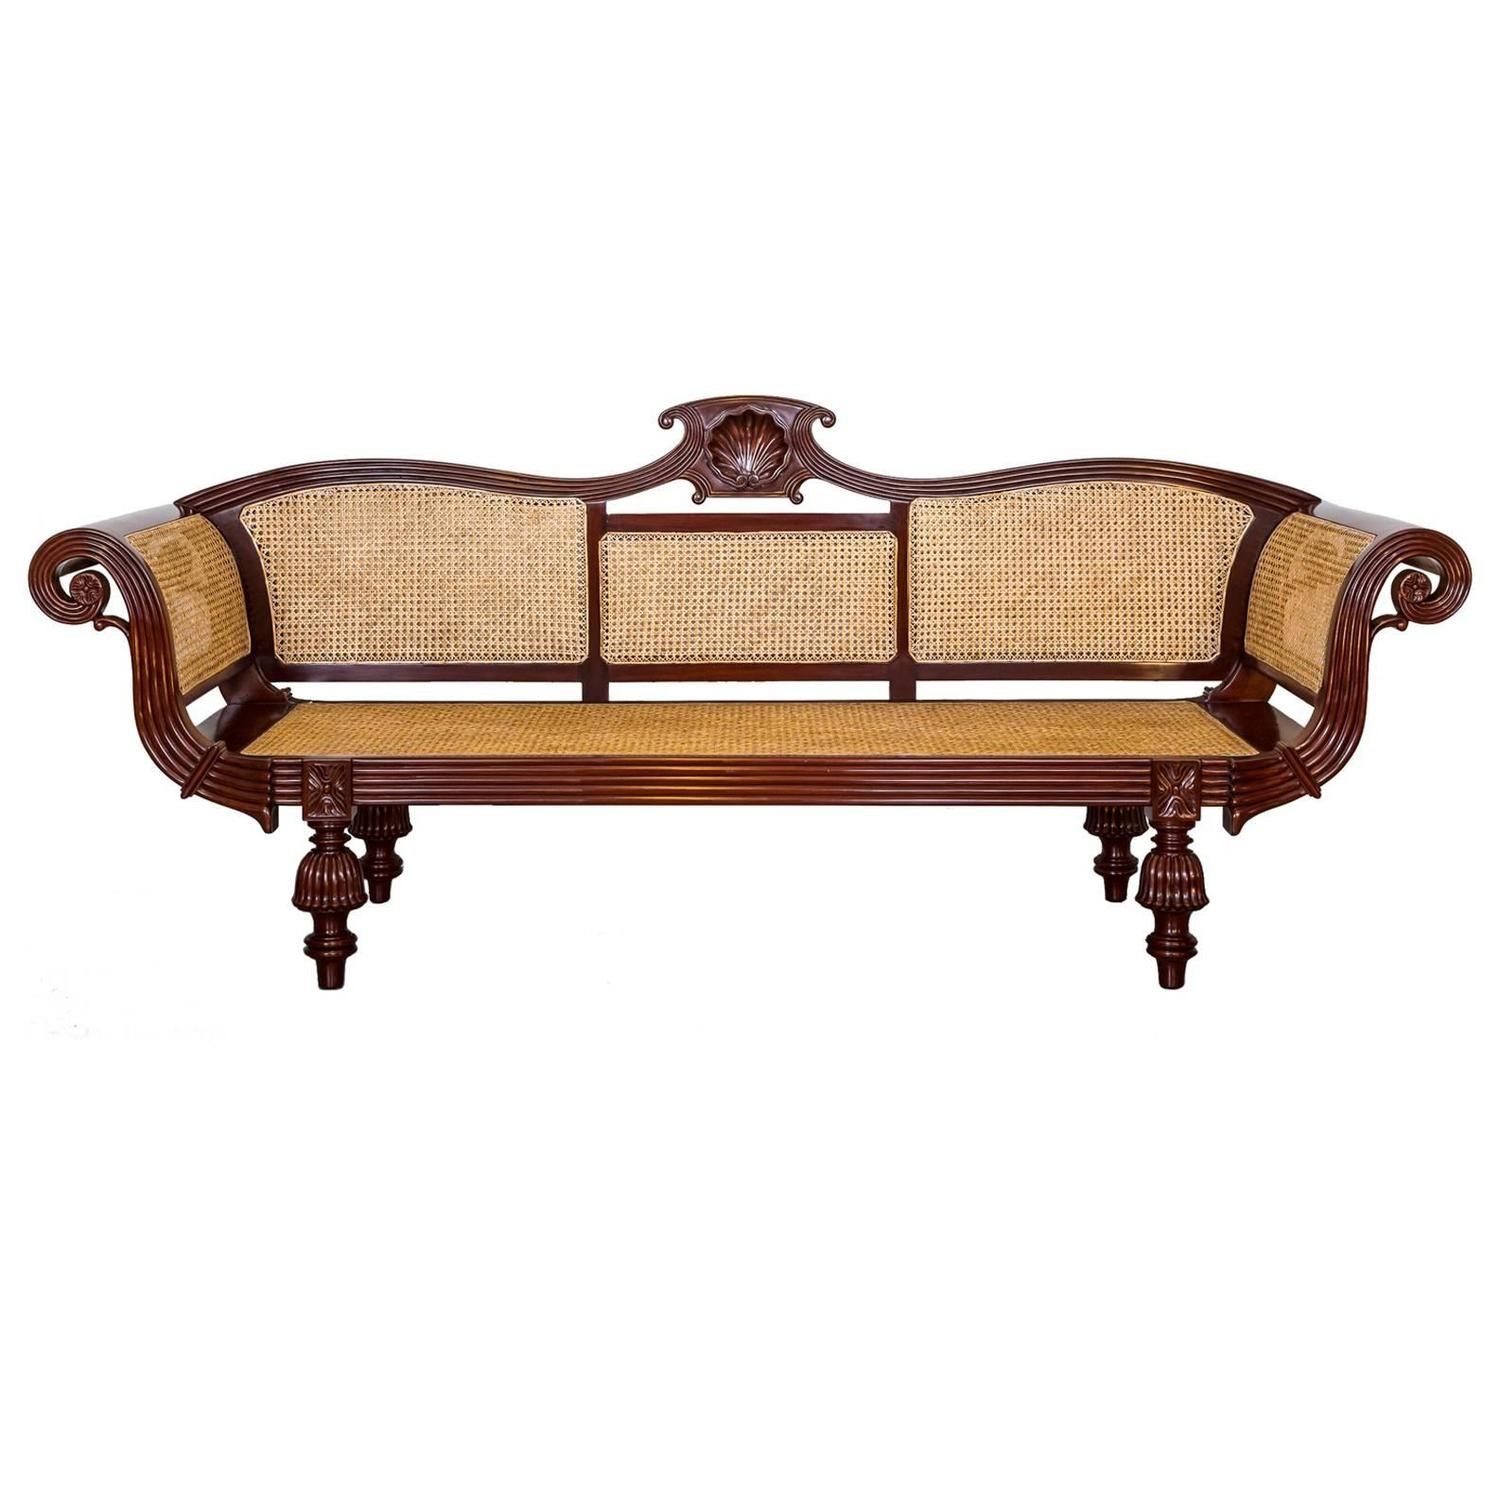 Anglo Indian Or British Colonial Mahogany Sofa At 1stdibs